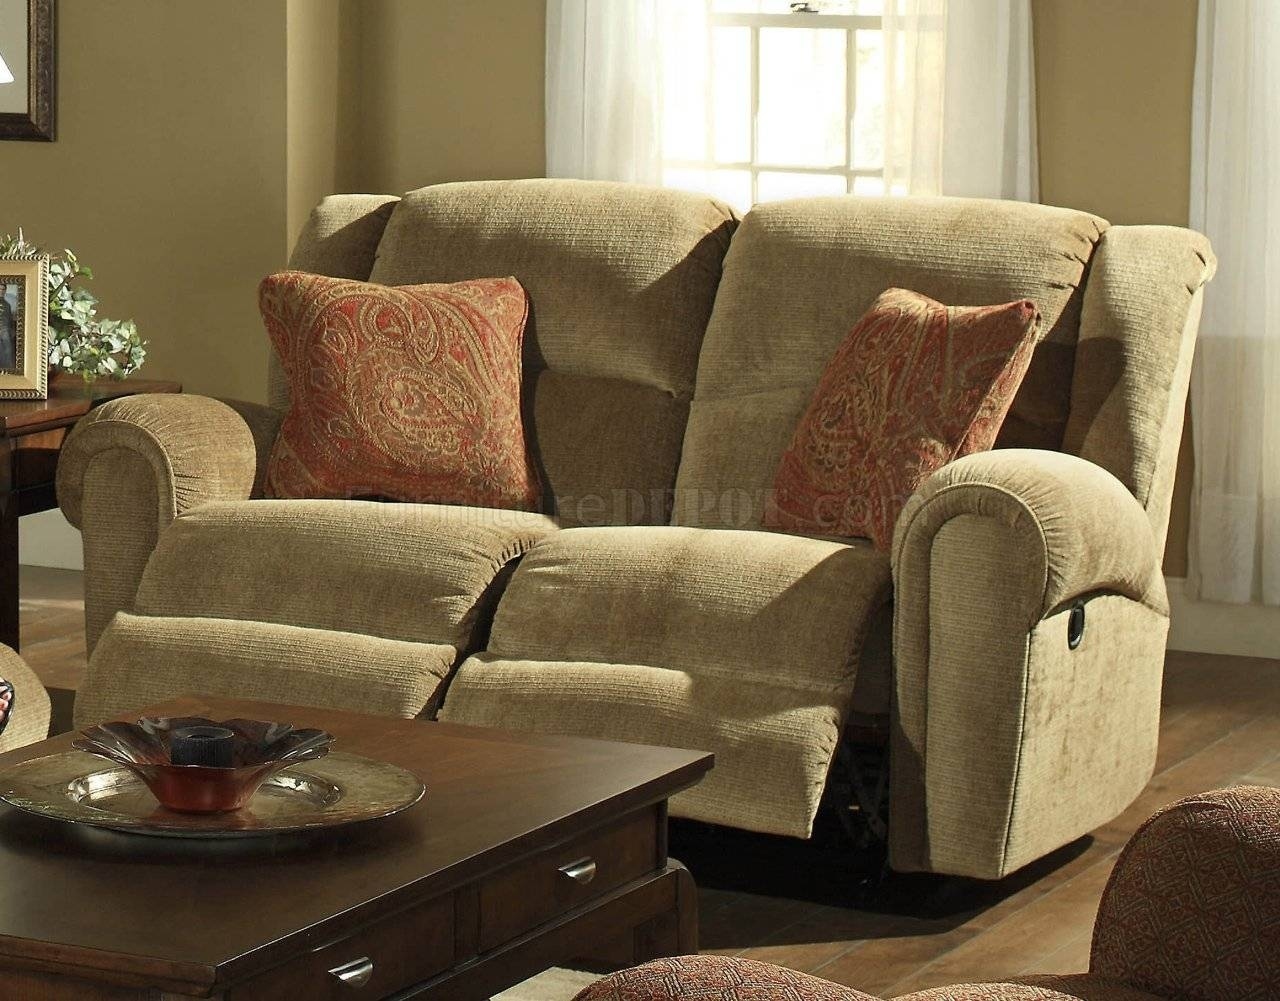 Elegant Fabric Reclining Sofa 39 With Additional Sofa Design Ideas throughout Elegant Fabric Sofas (Image 3 of 30)